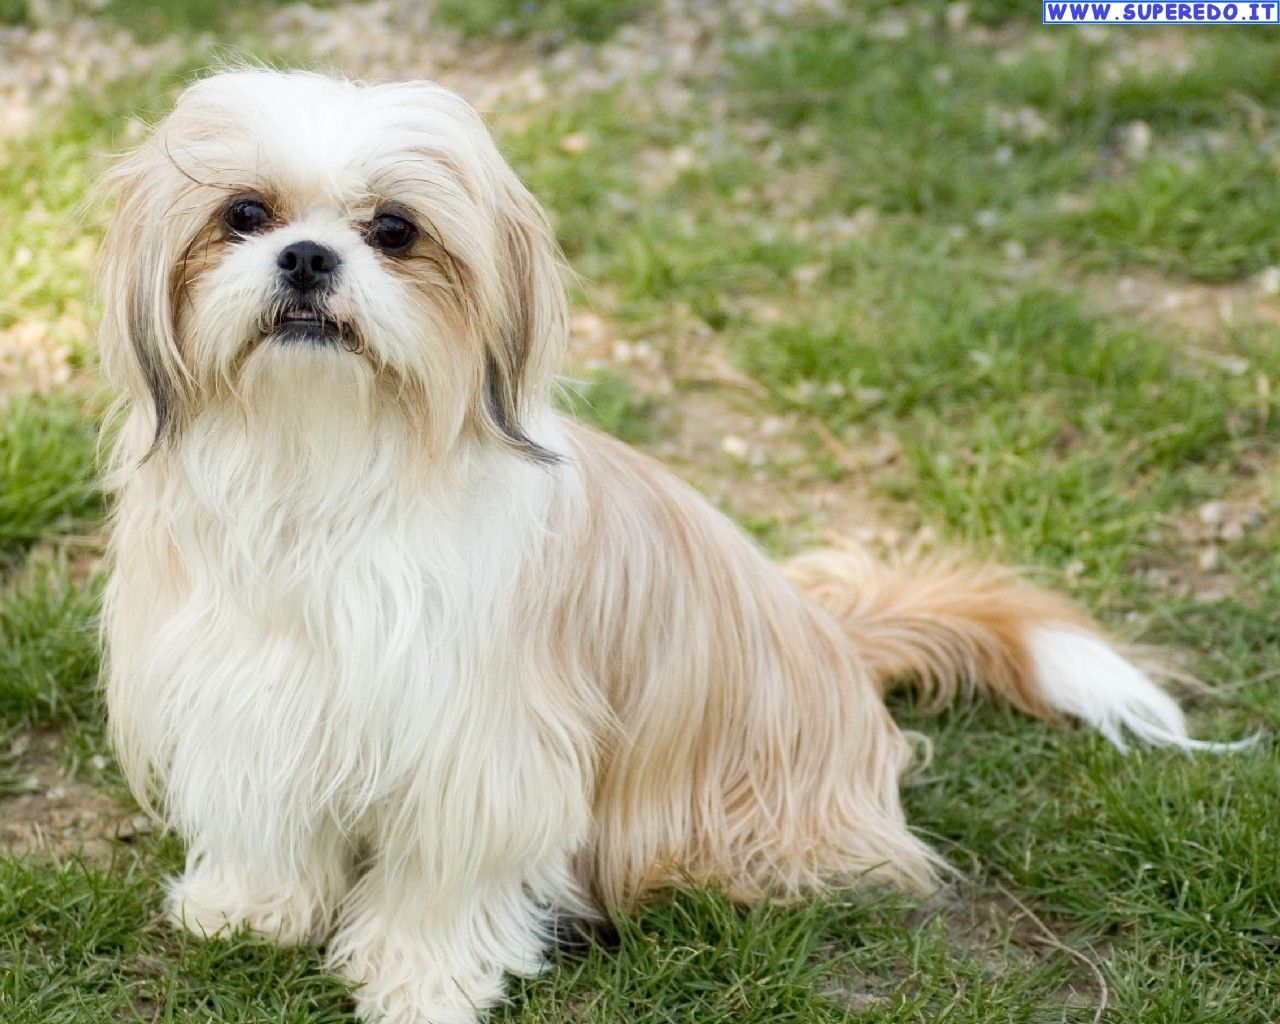 A compact and solid dog, the Shih Tzu's long, flowing